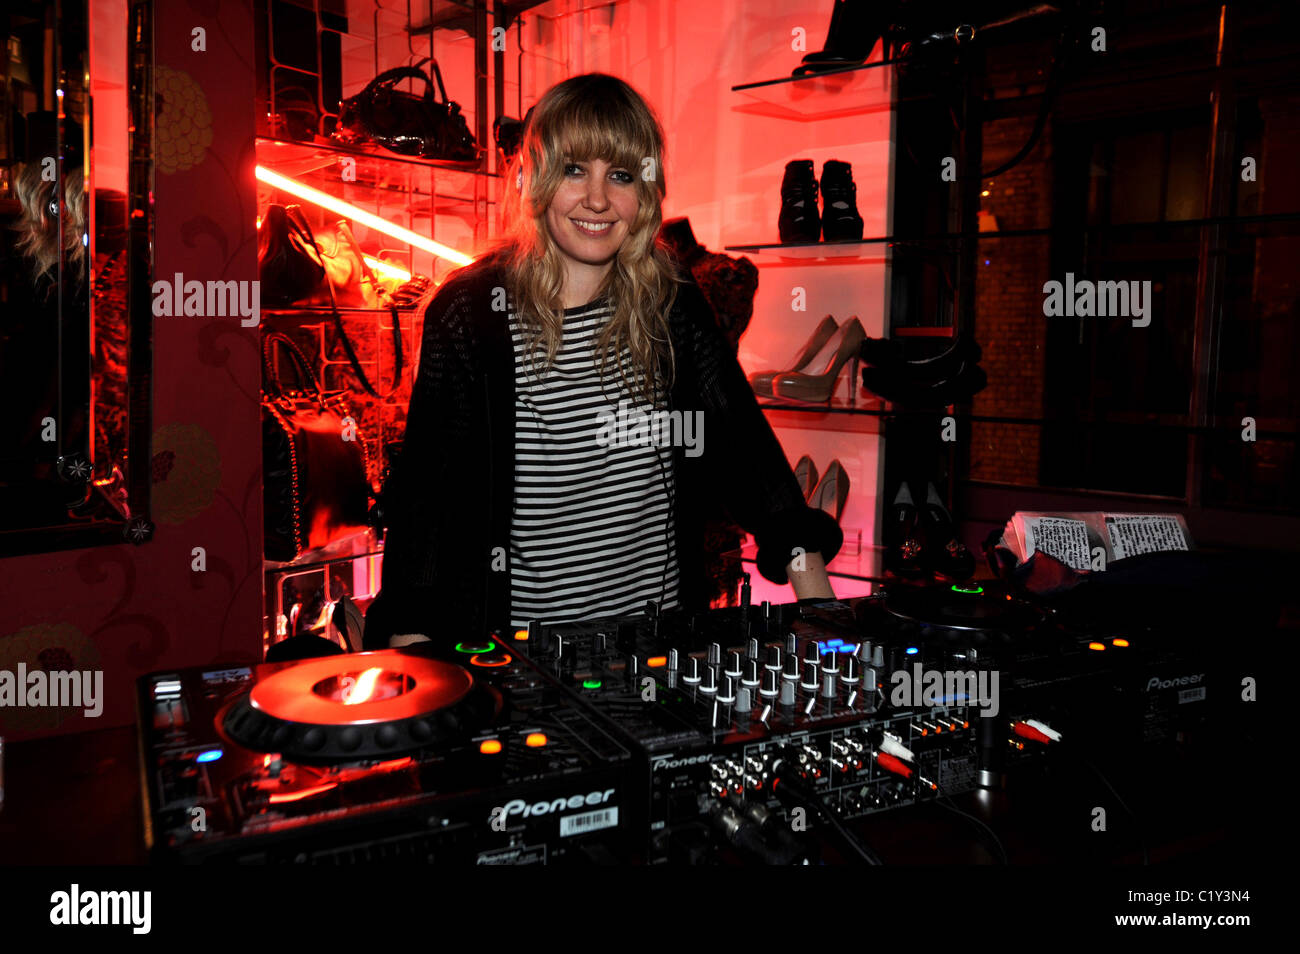 Phillipa 'Pip' Brown of Ladyhawke PRPS hearts start launch party at held at Start boutique London, England - Stock Image